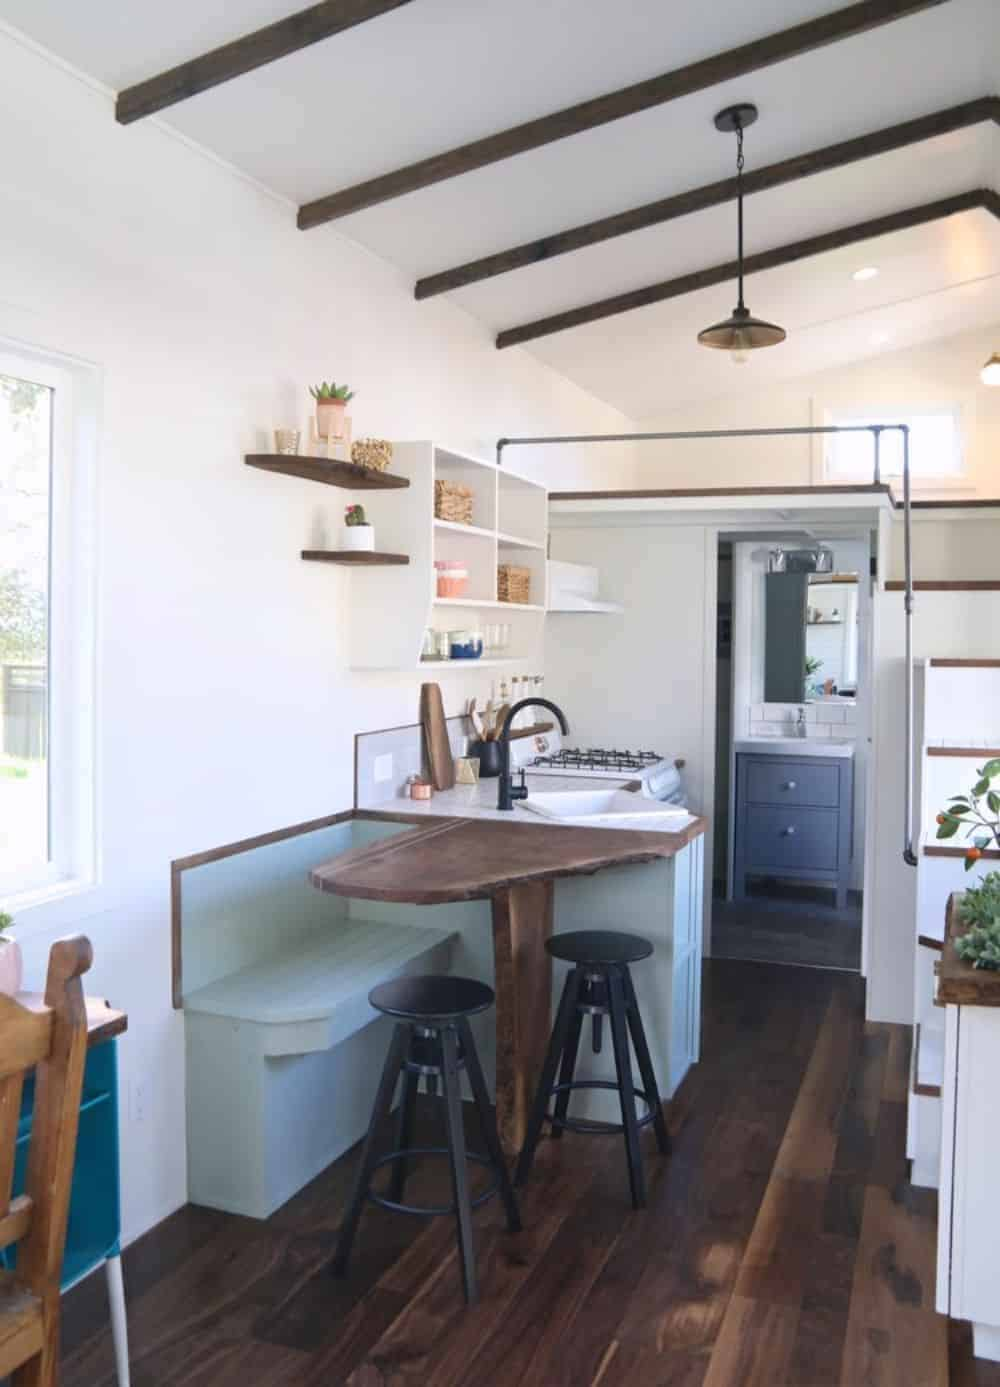 Tiny house kitchen with dinette